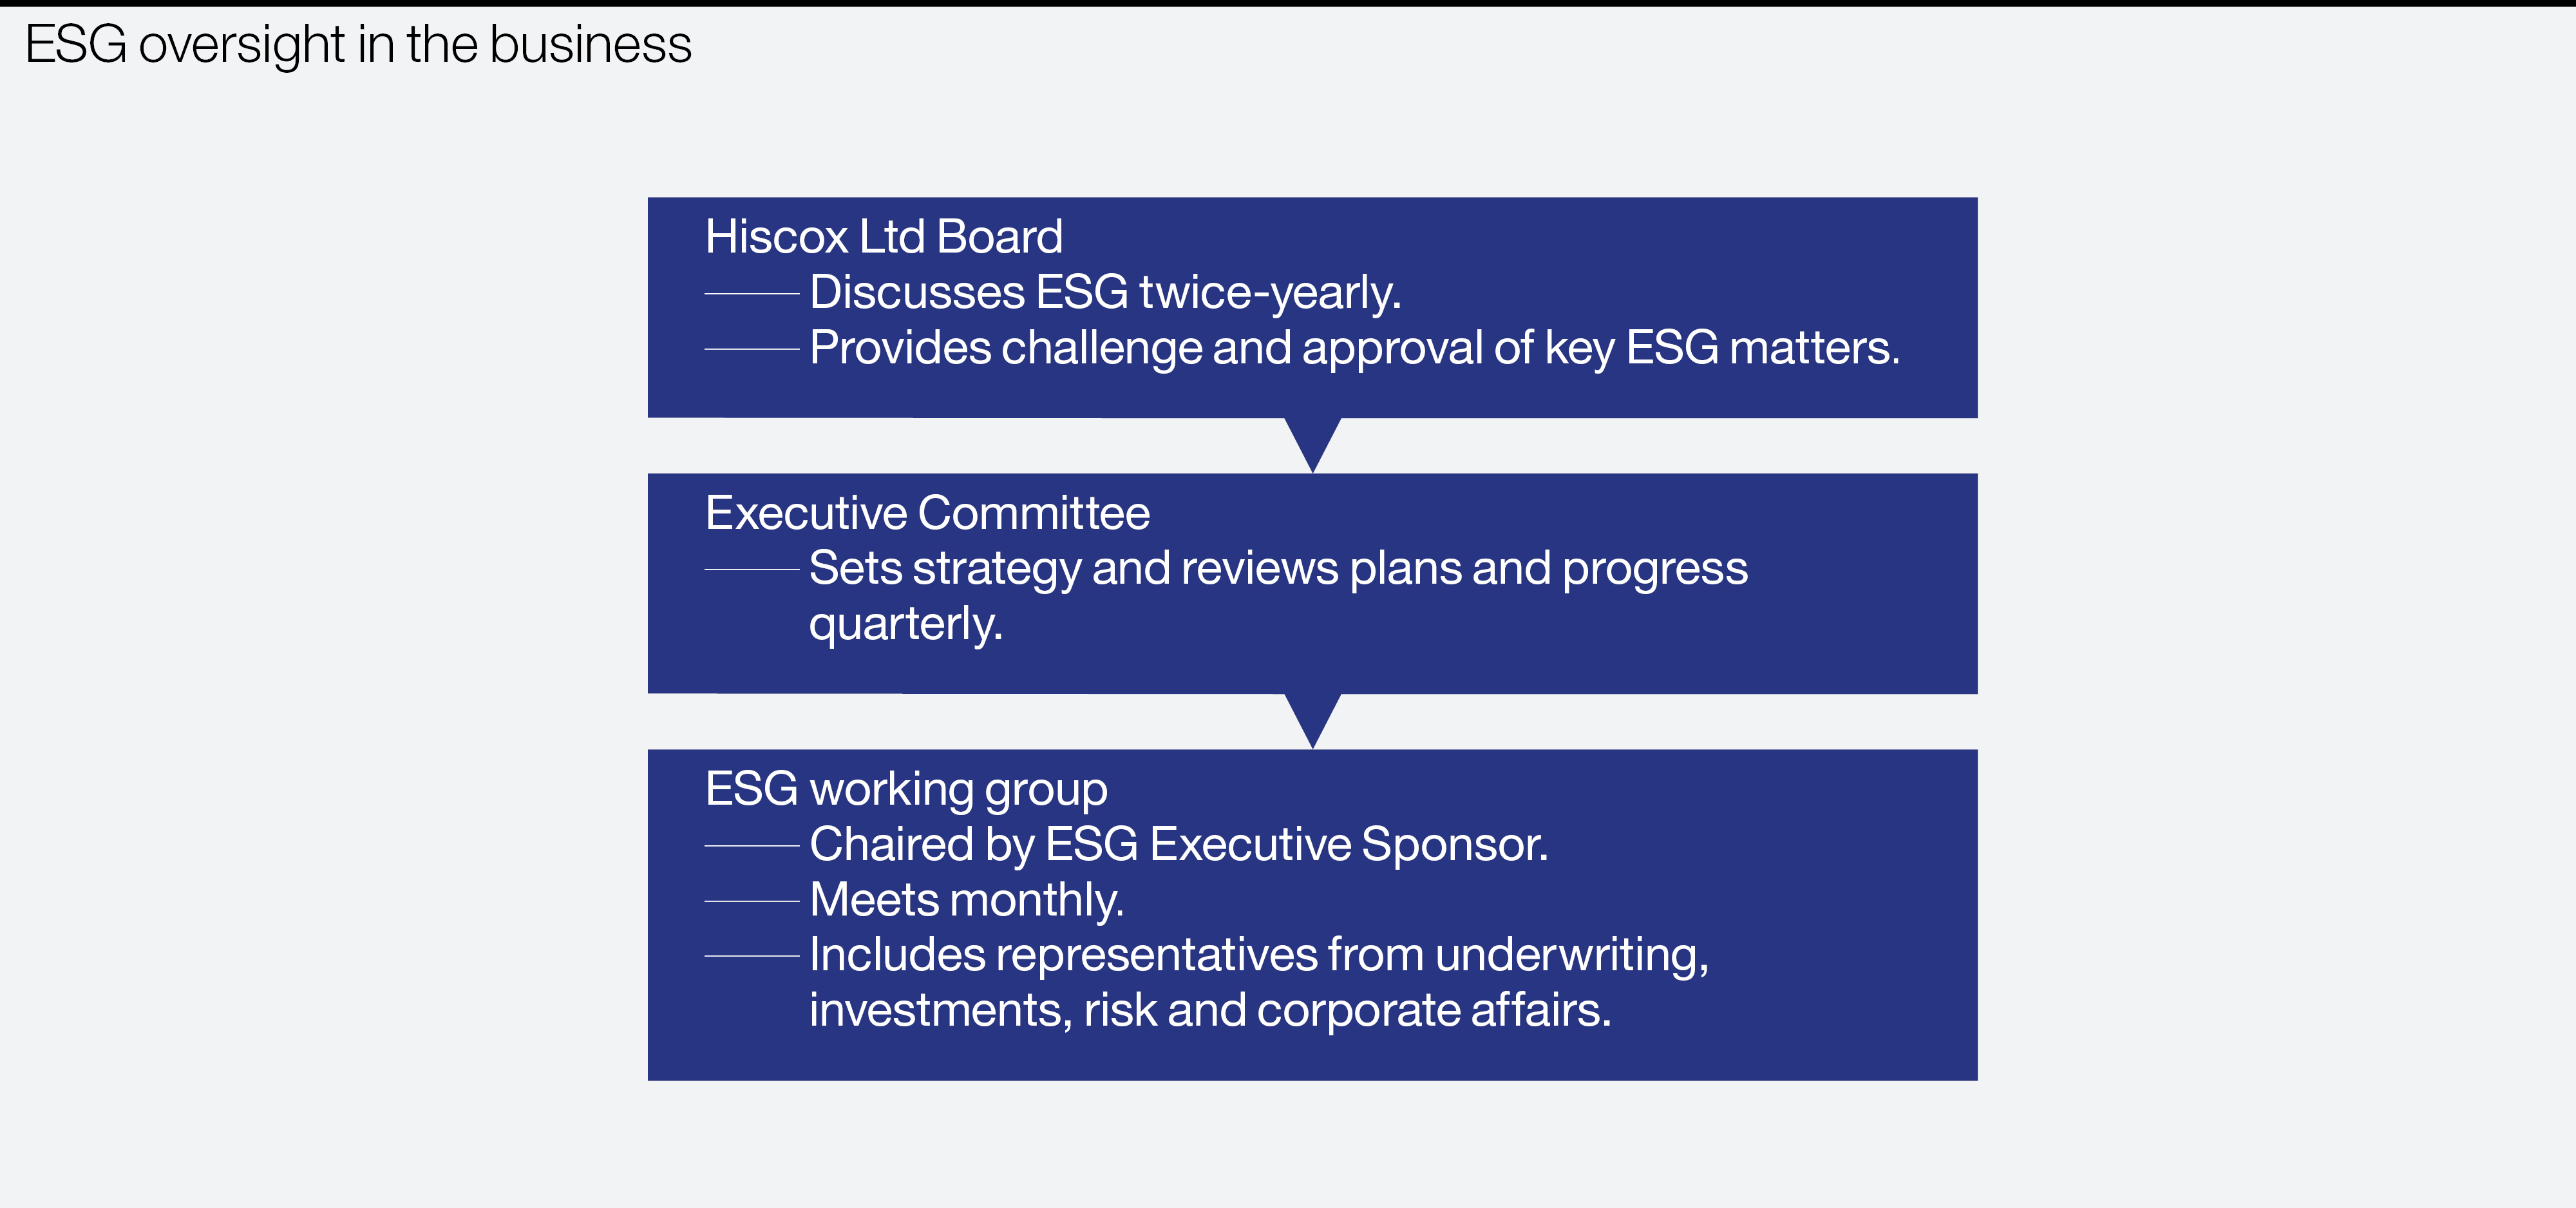 ESG oversight in the business